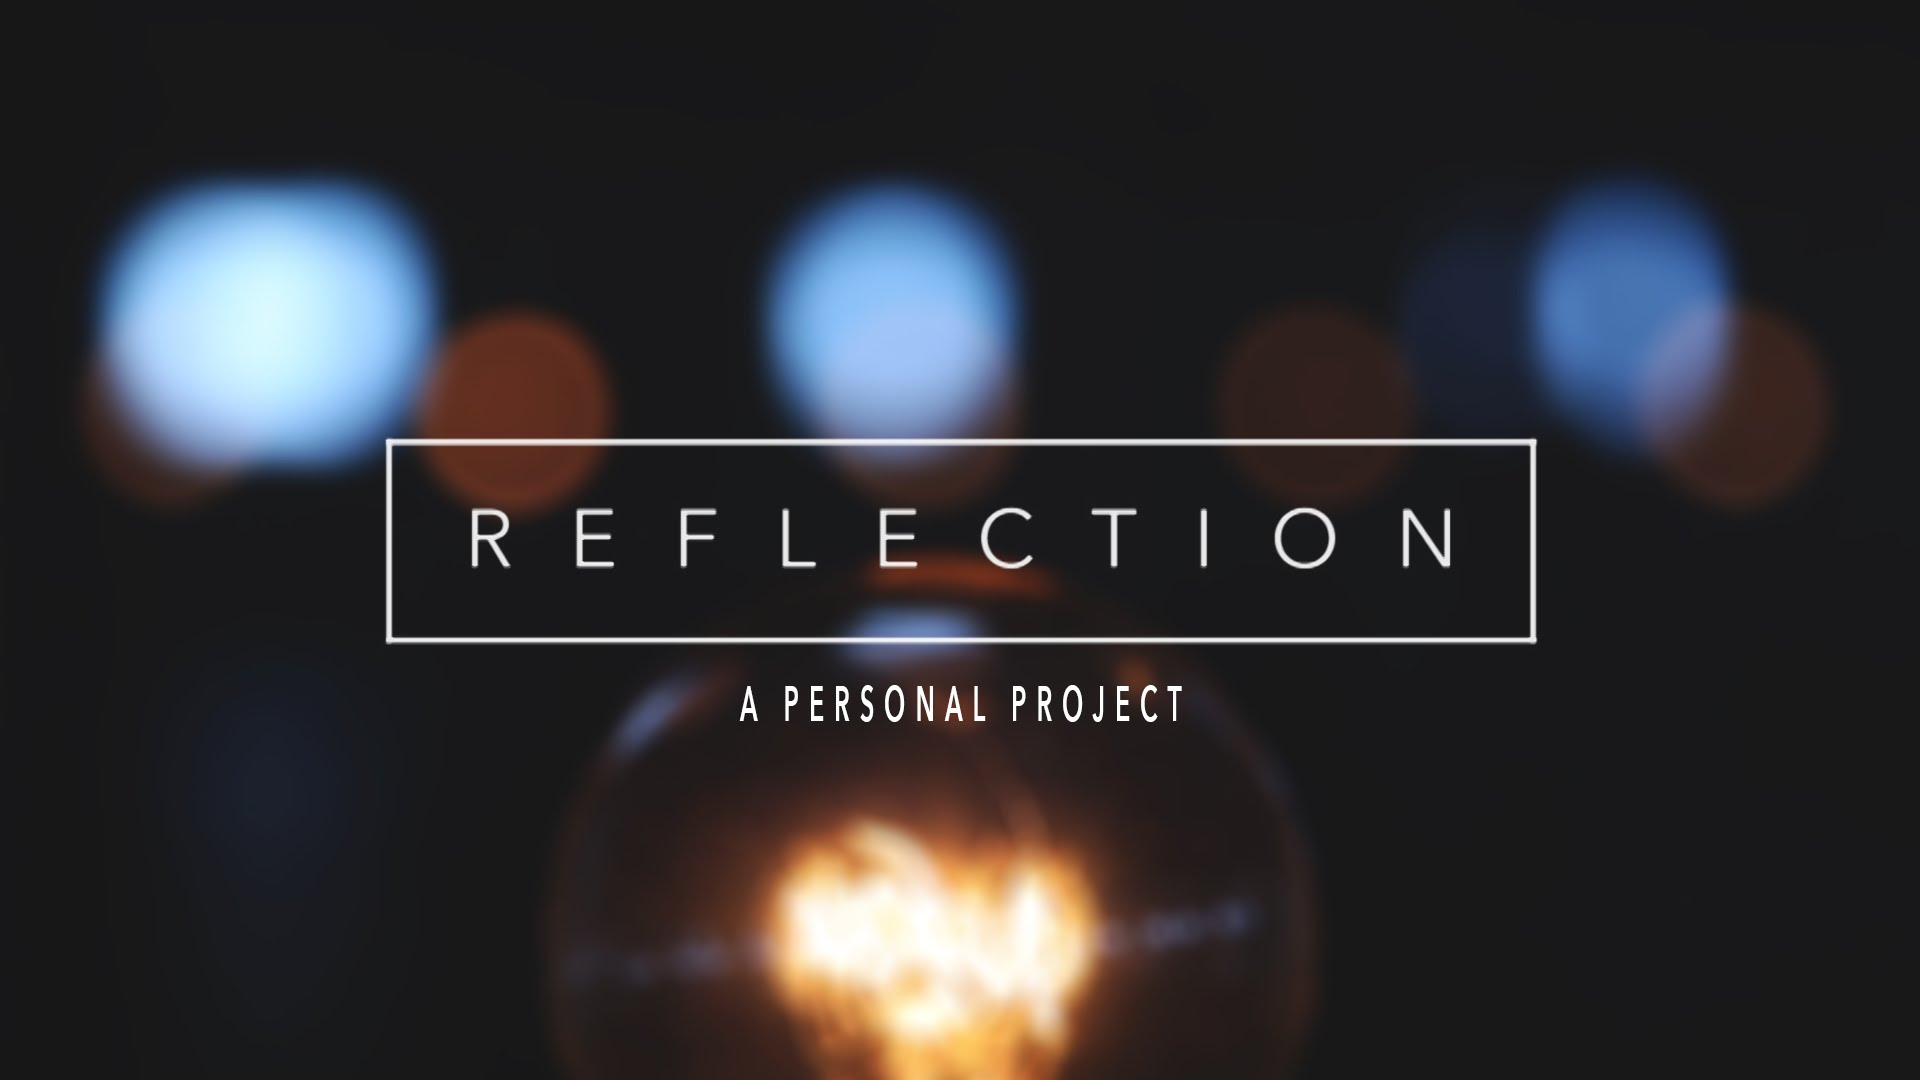 personal reflections But by the grace of god i am what i am, and his grace toward me was not in vain (1 corinthians 15:10a, esv.